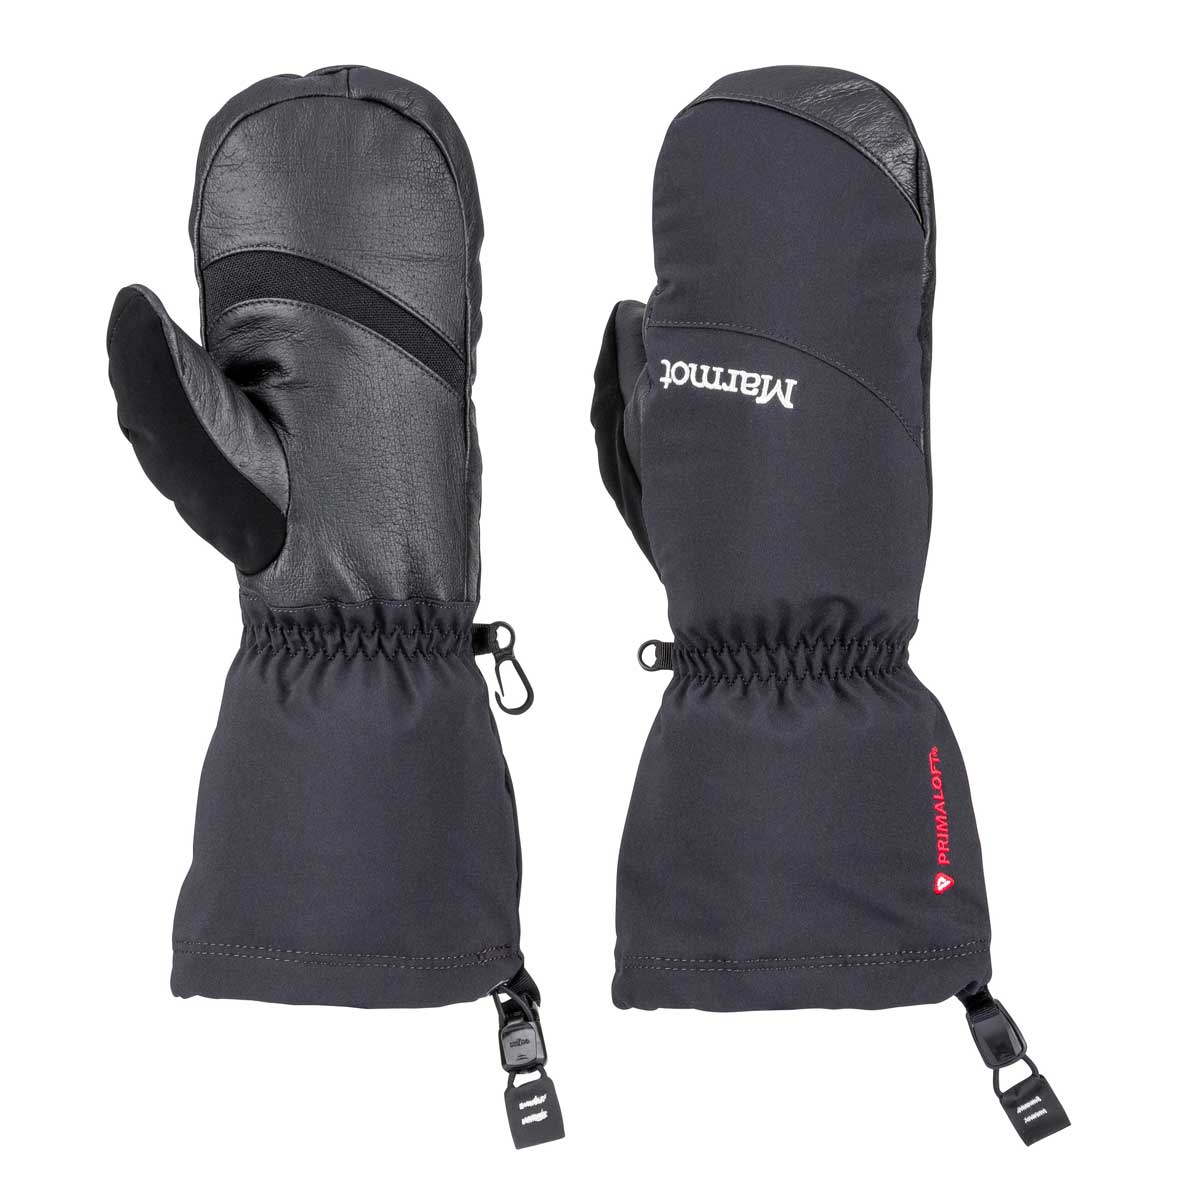 Marmot Women's Warmest Mitt in Black